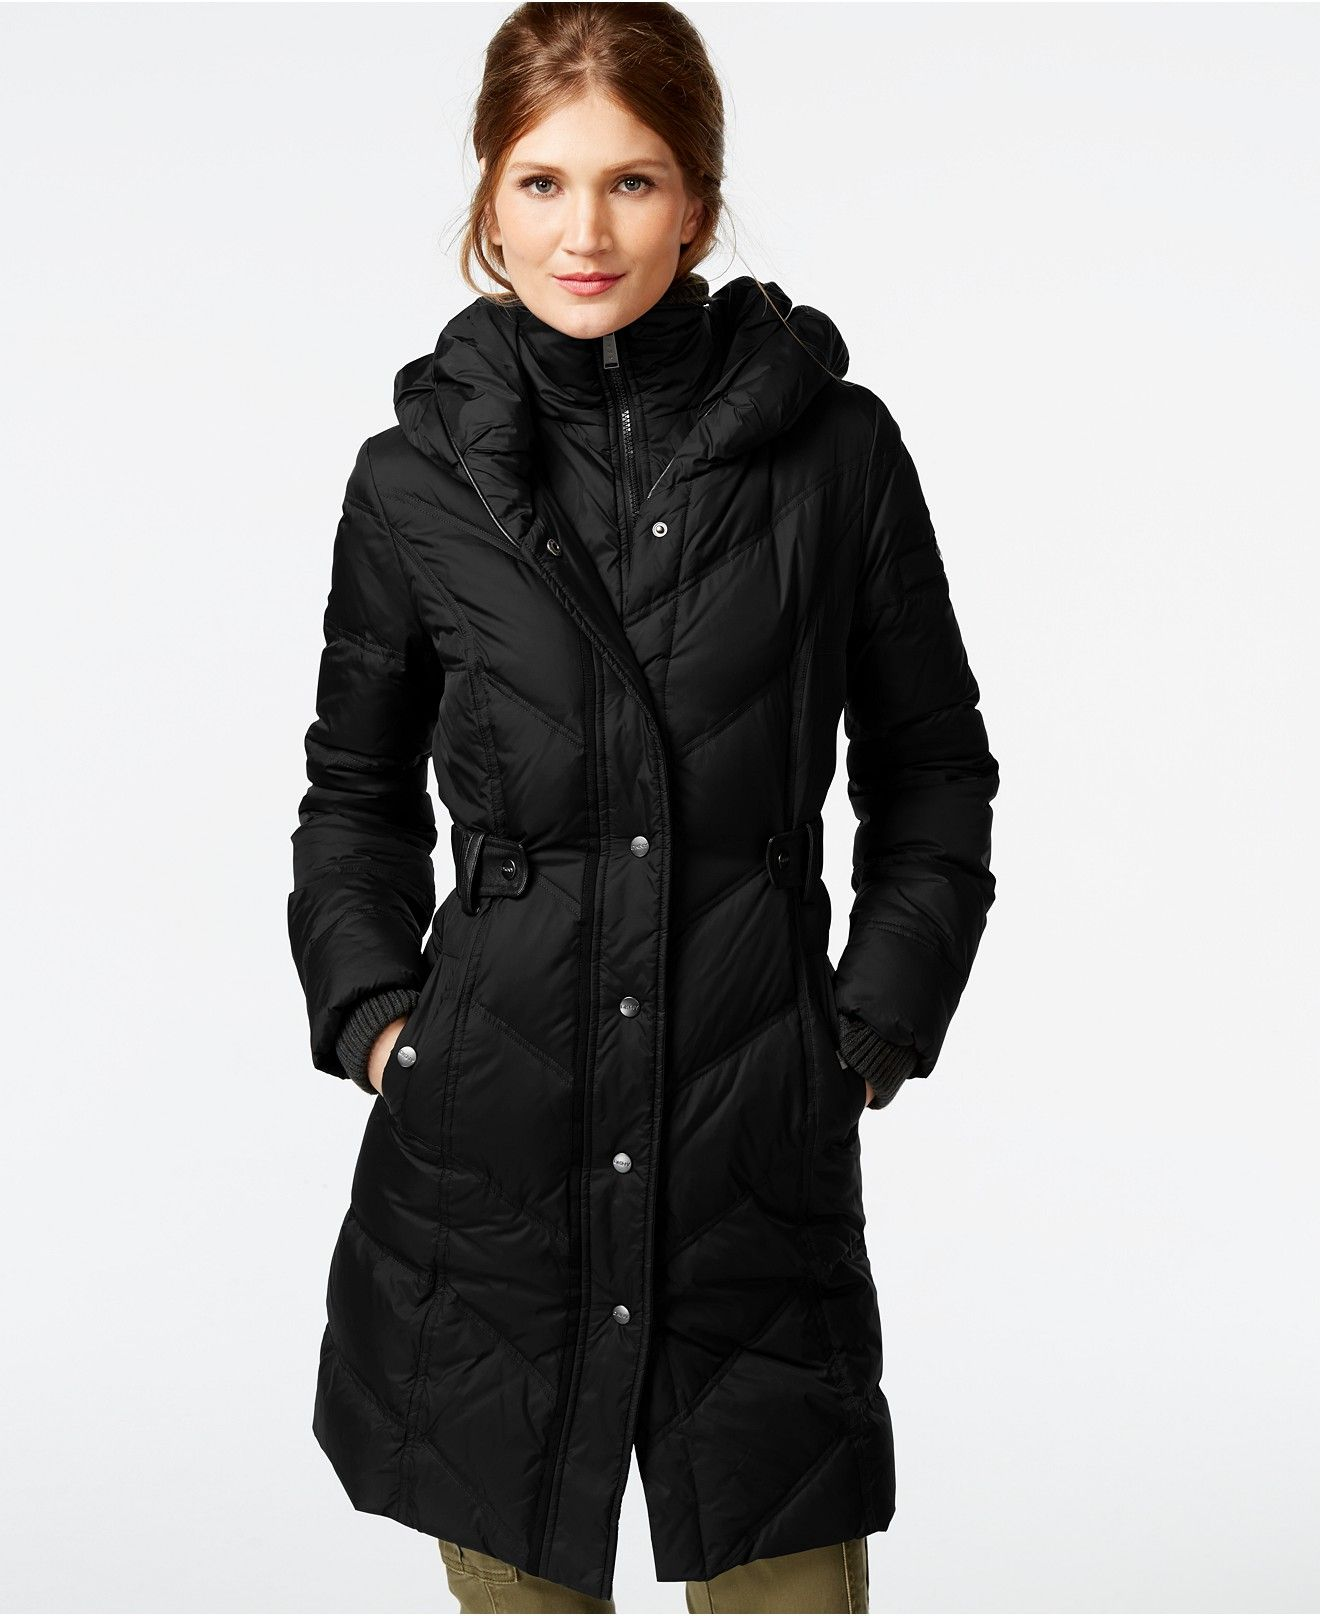 DKNY Faux-Leather-Trim Quilted Down Coat - Coats - Women - Macy's ...